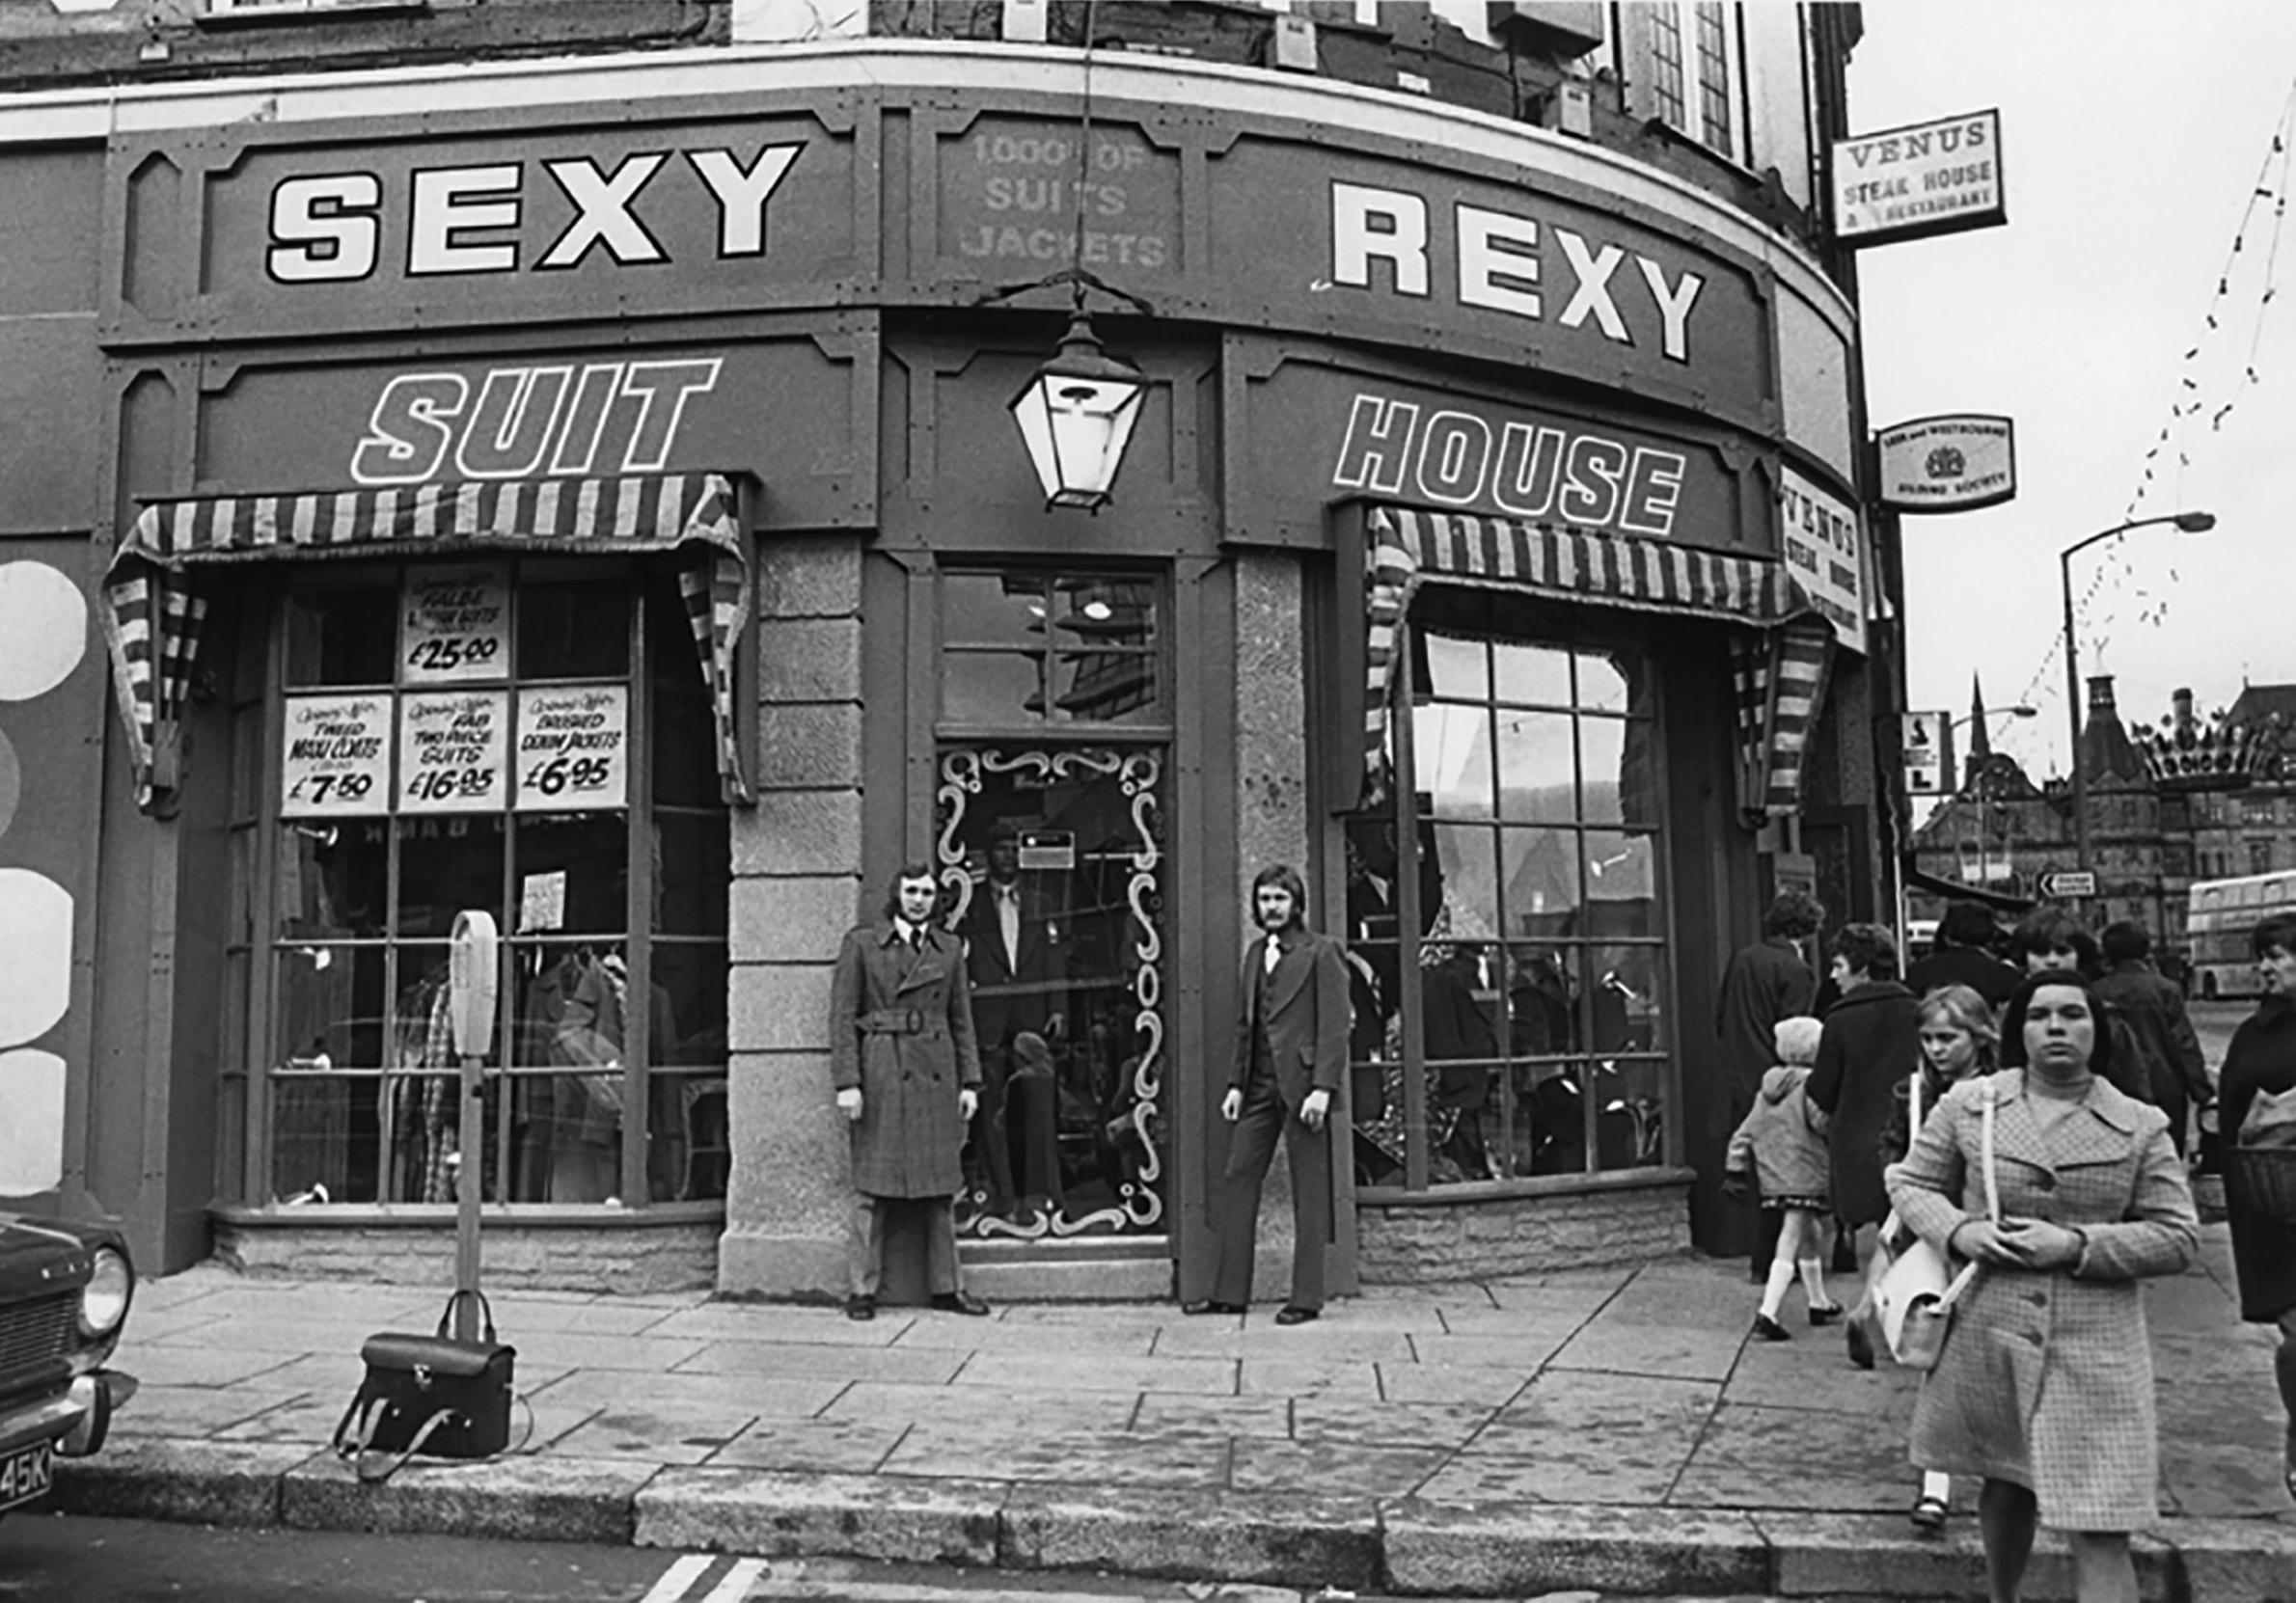 SEXY REXY clothes shop Sheffield city centre